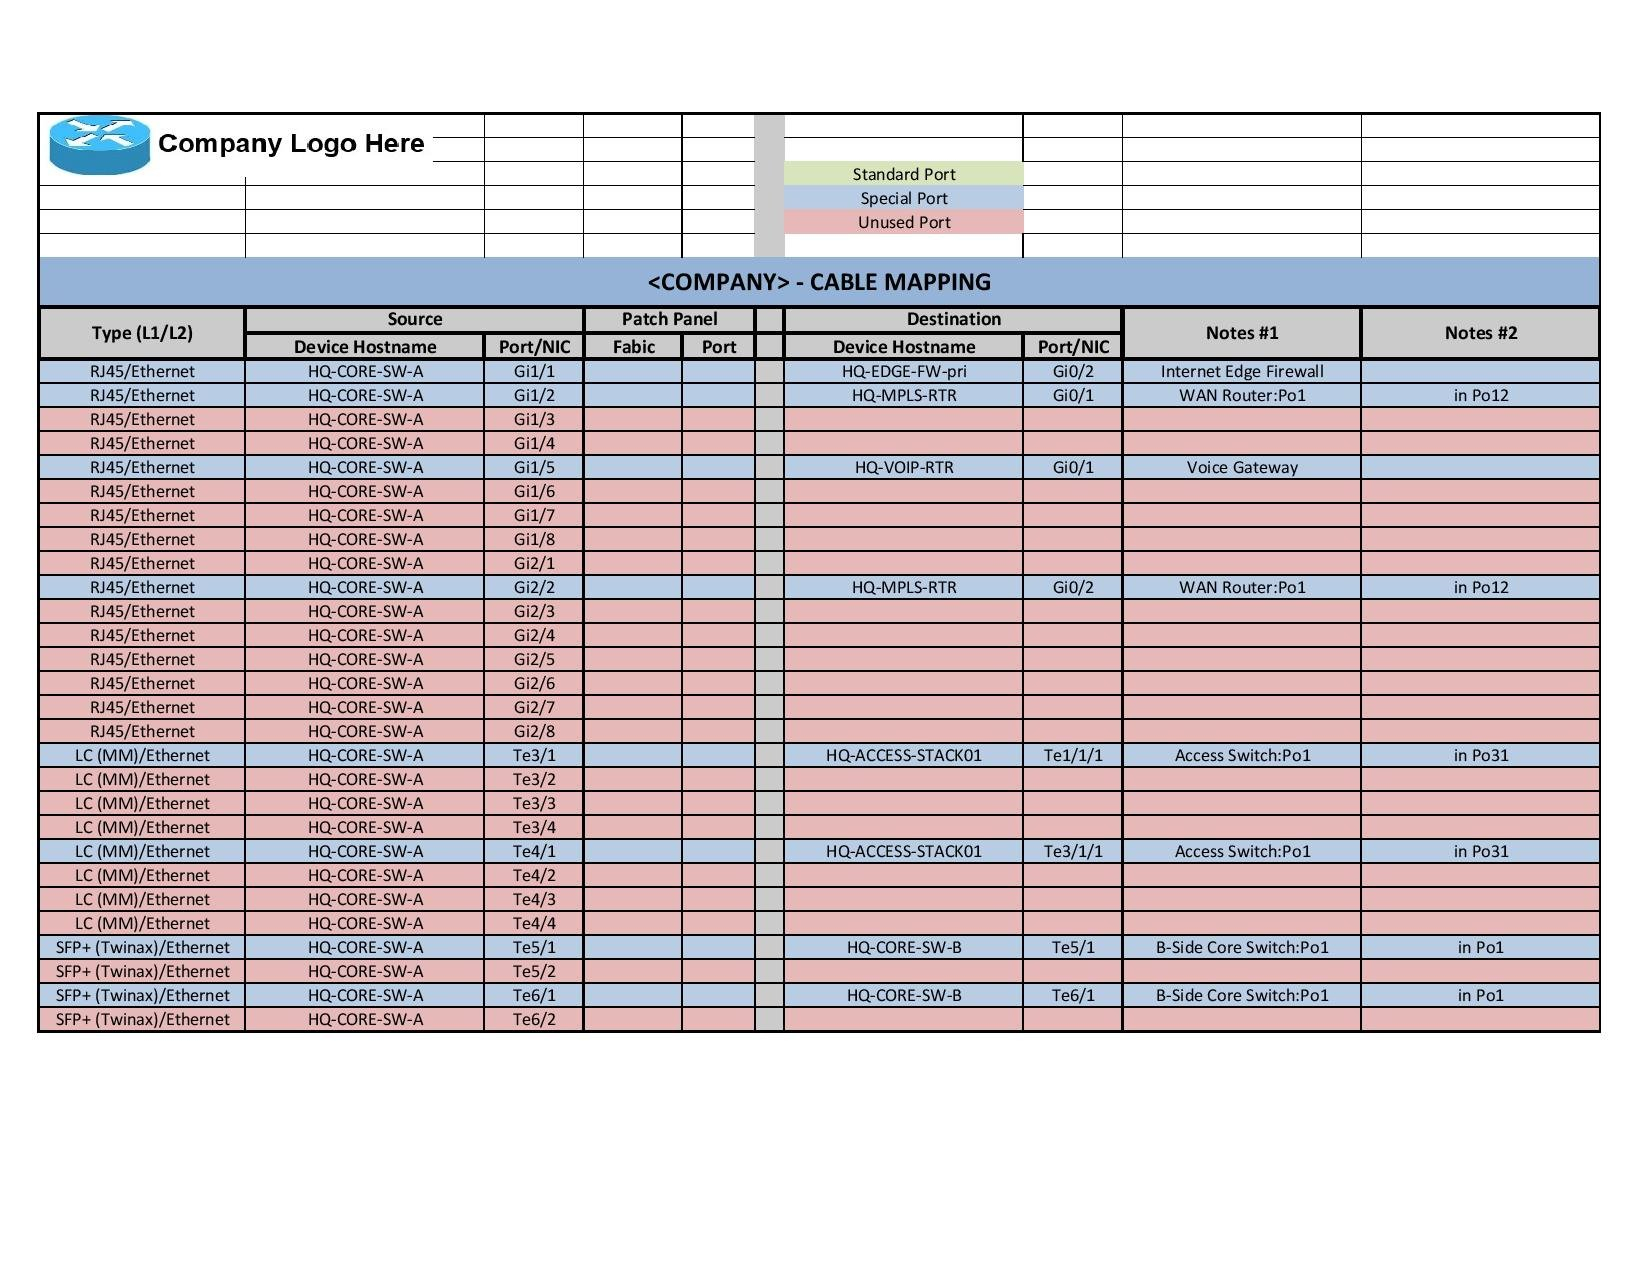 Network Documentation Series: Port Mapping With Data Mapping Spreadsheet Template